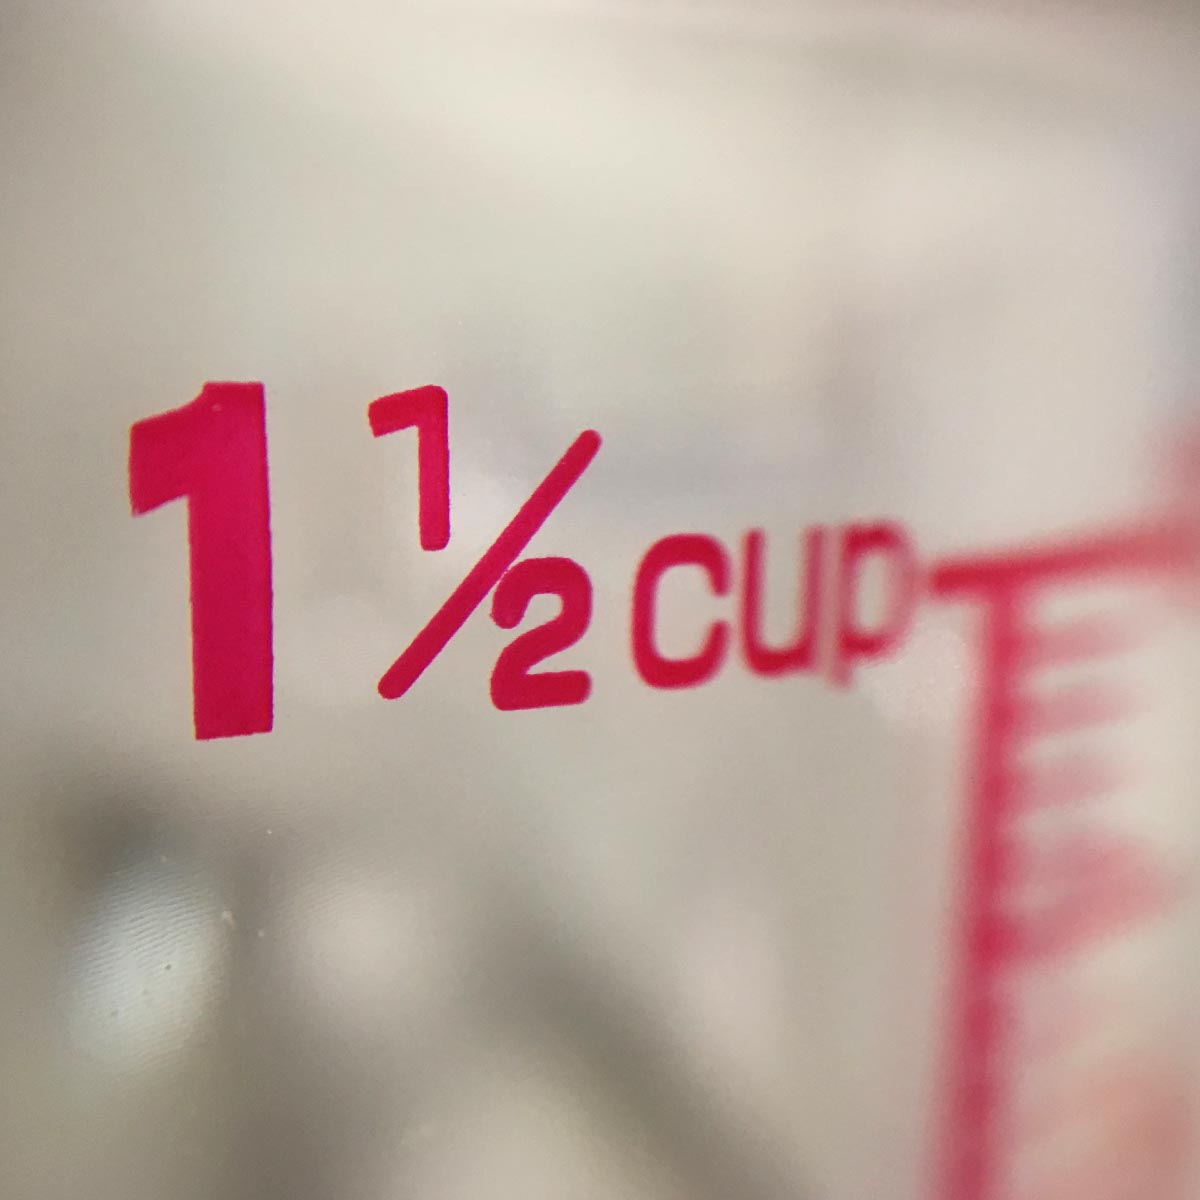 Measuring Cup - Side macro view